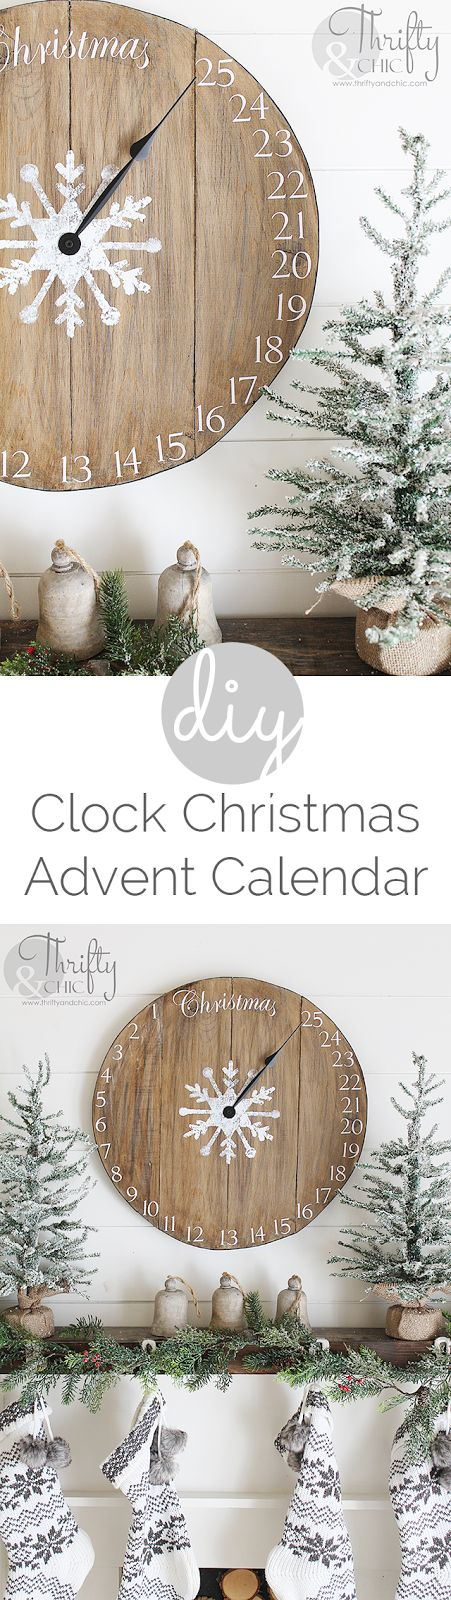 DIY wood clock Christmas advent calendar! Great rustic farmhouse Christmas decor!